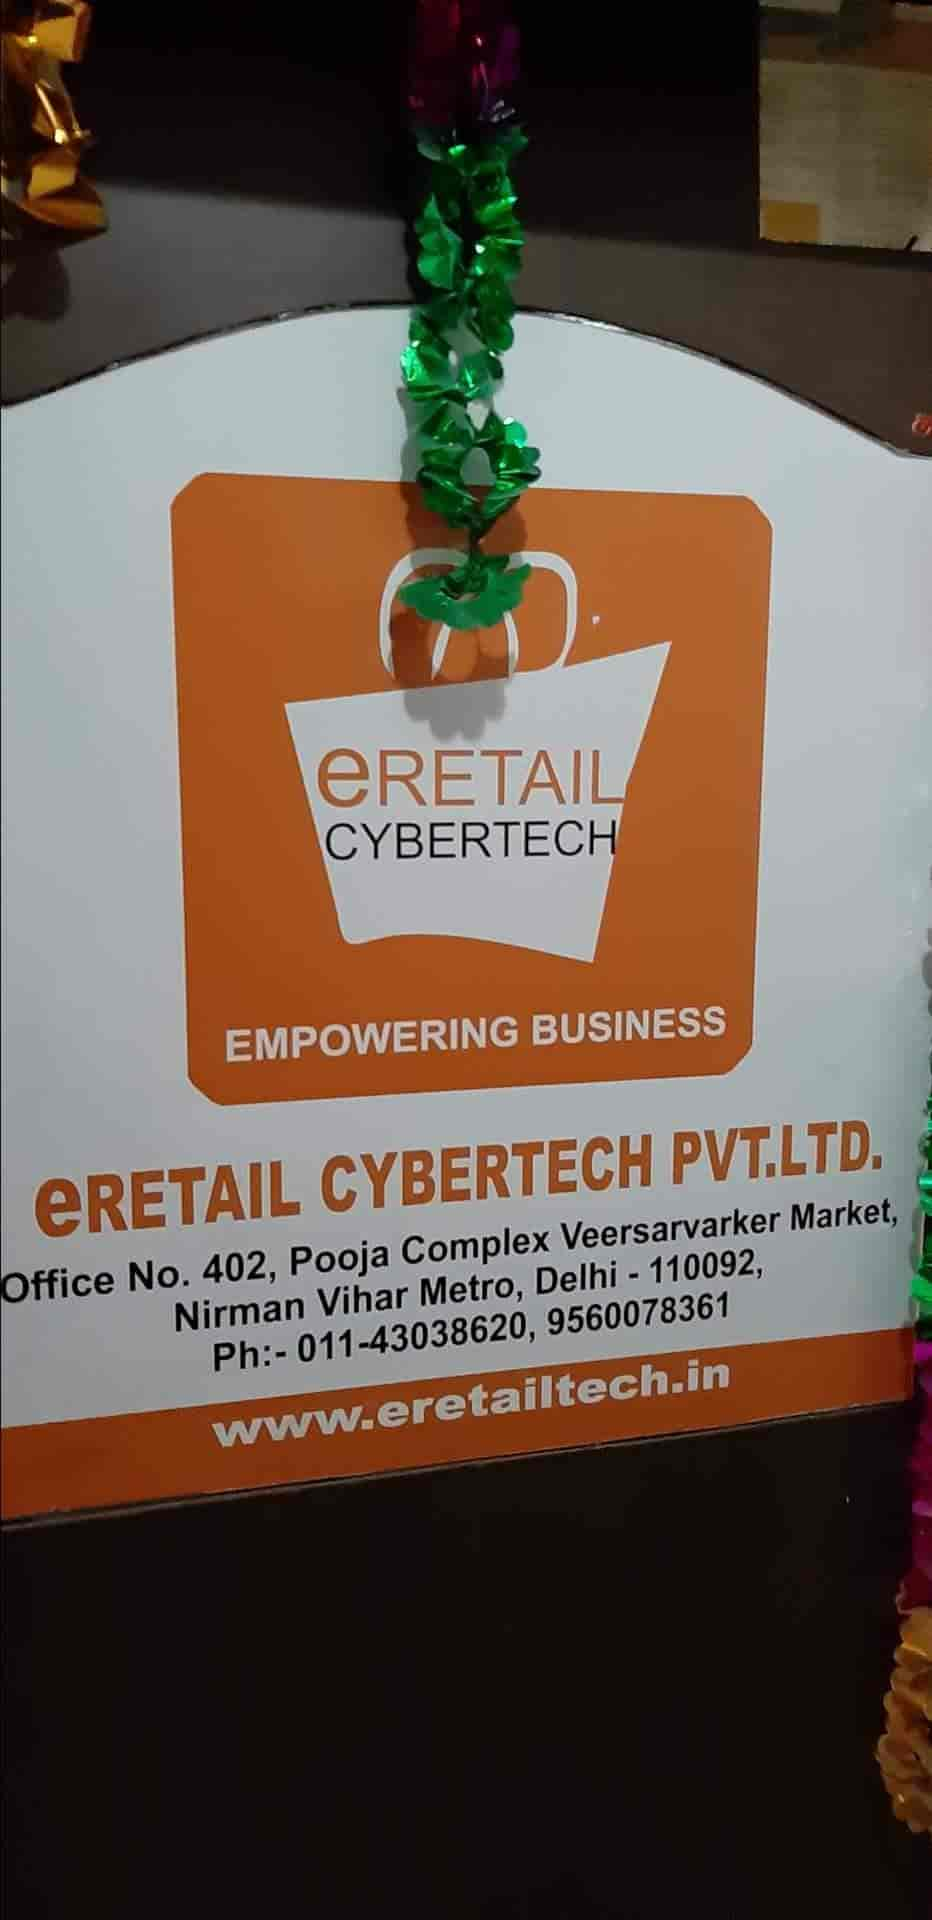 eretail cybertech pvt ltd